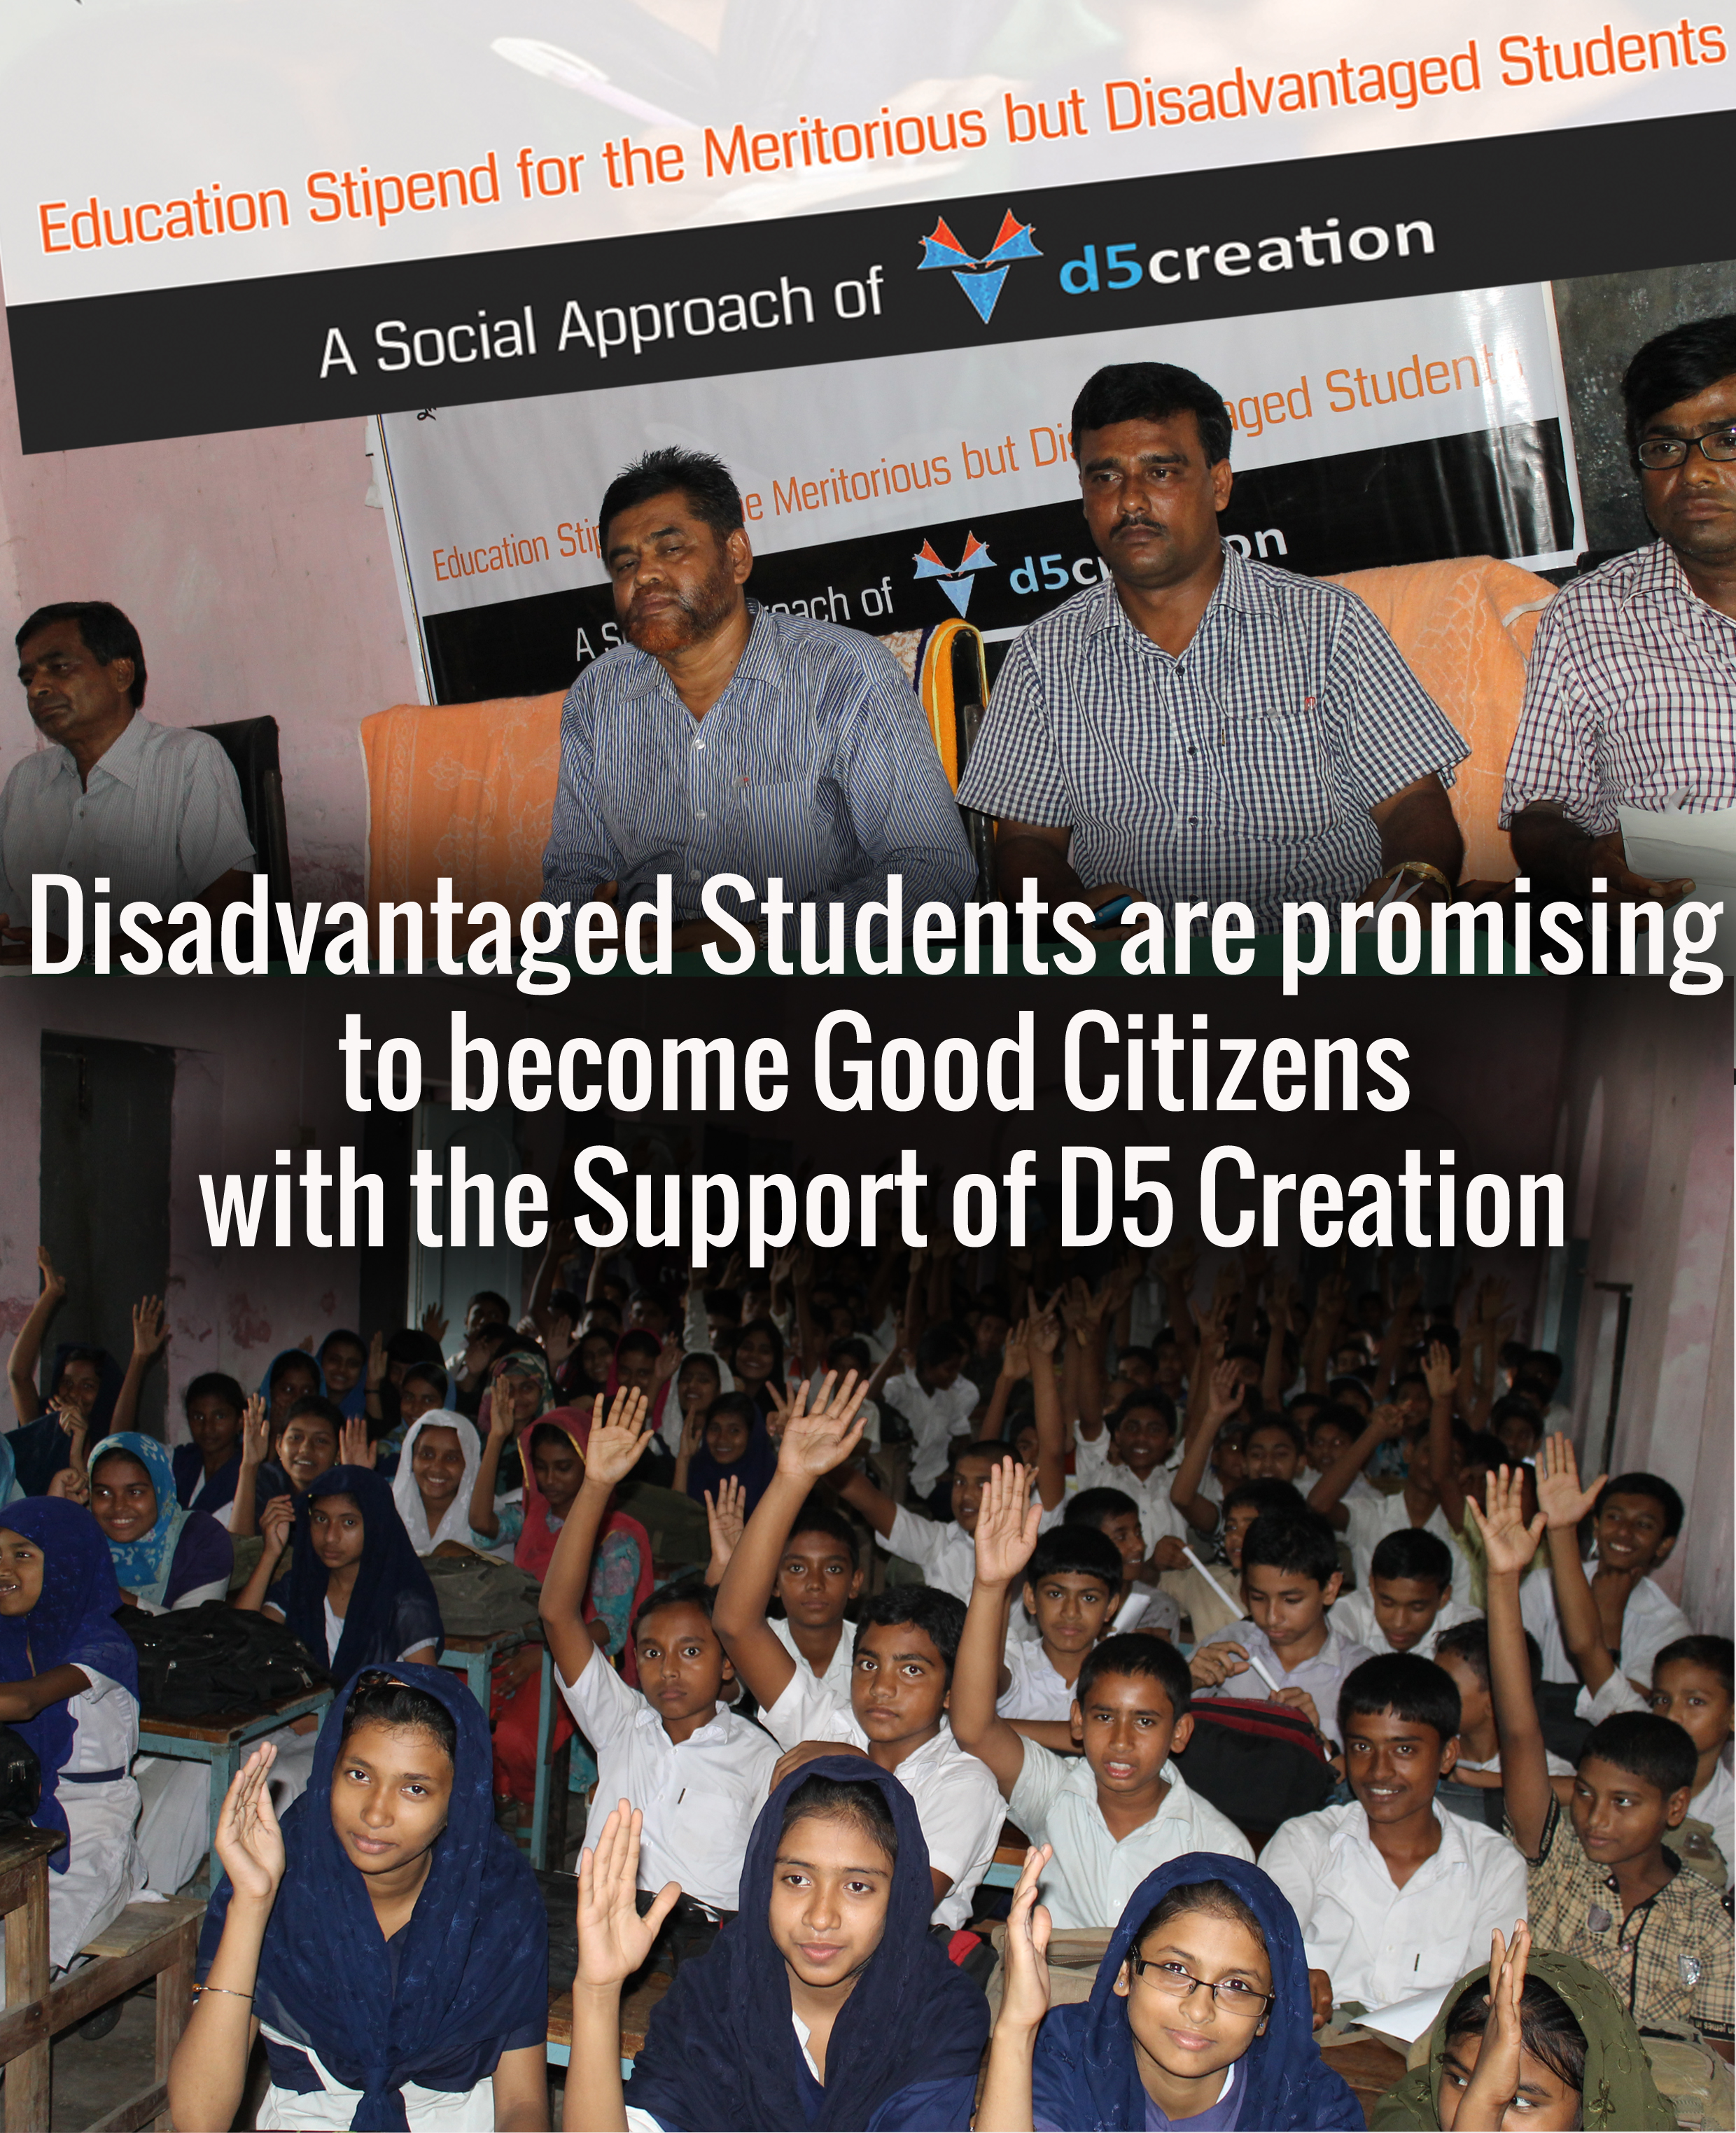 D5 Creation Education Support